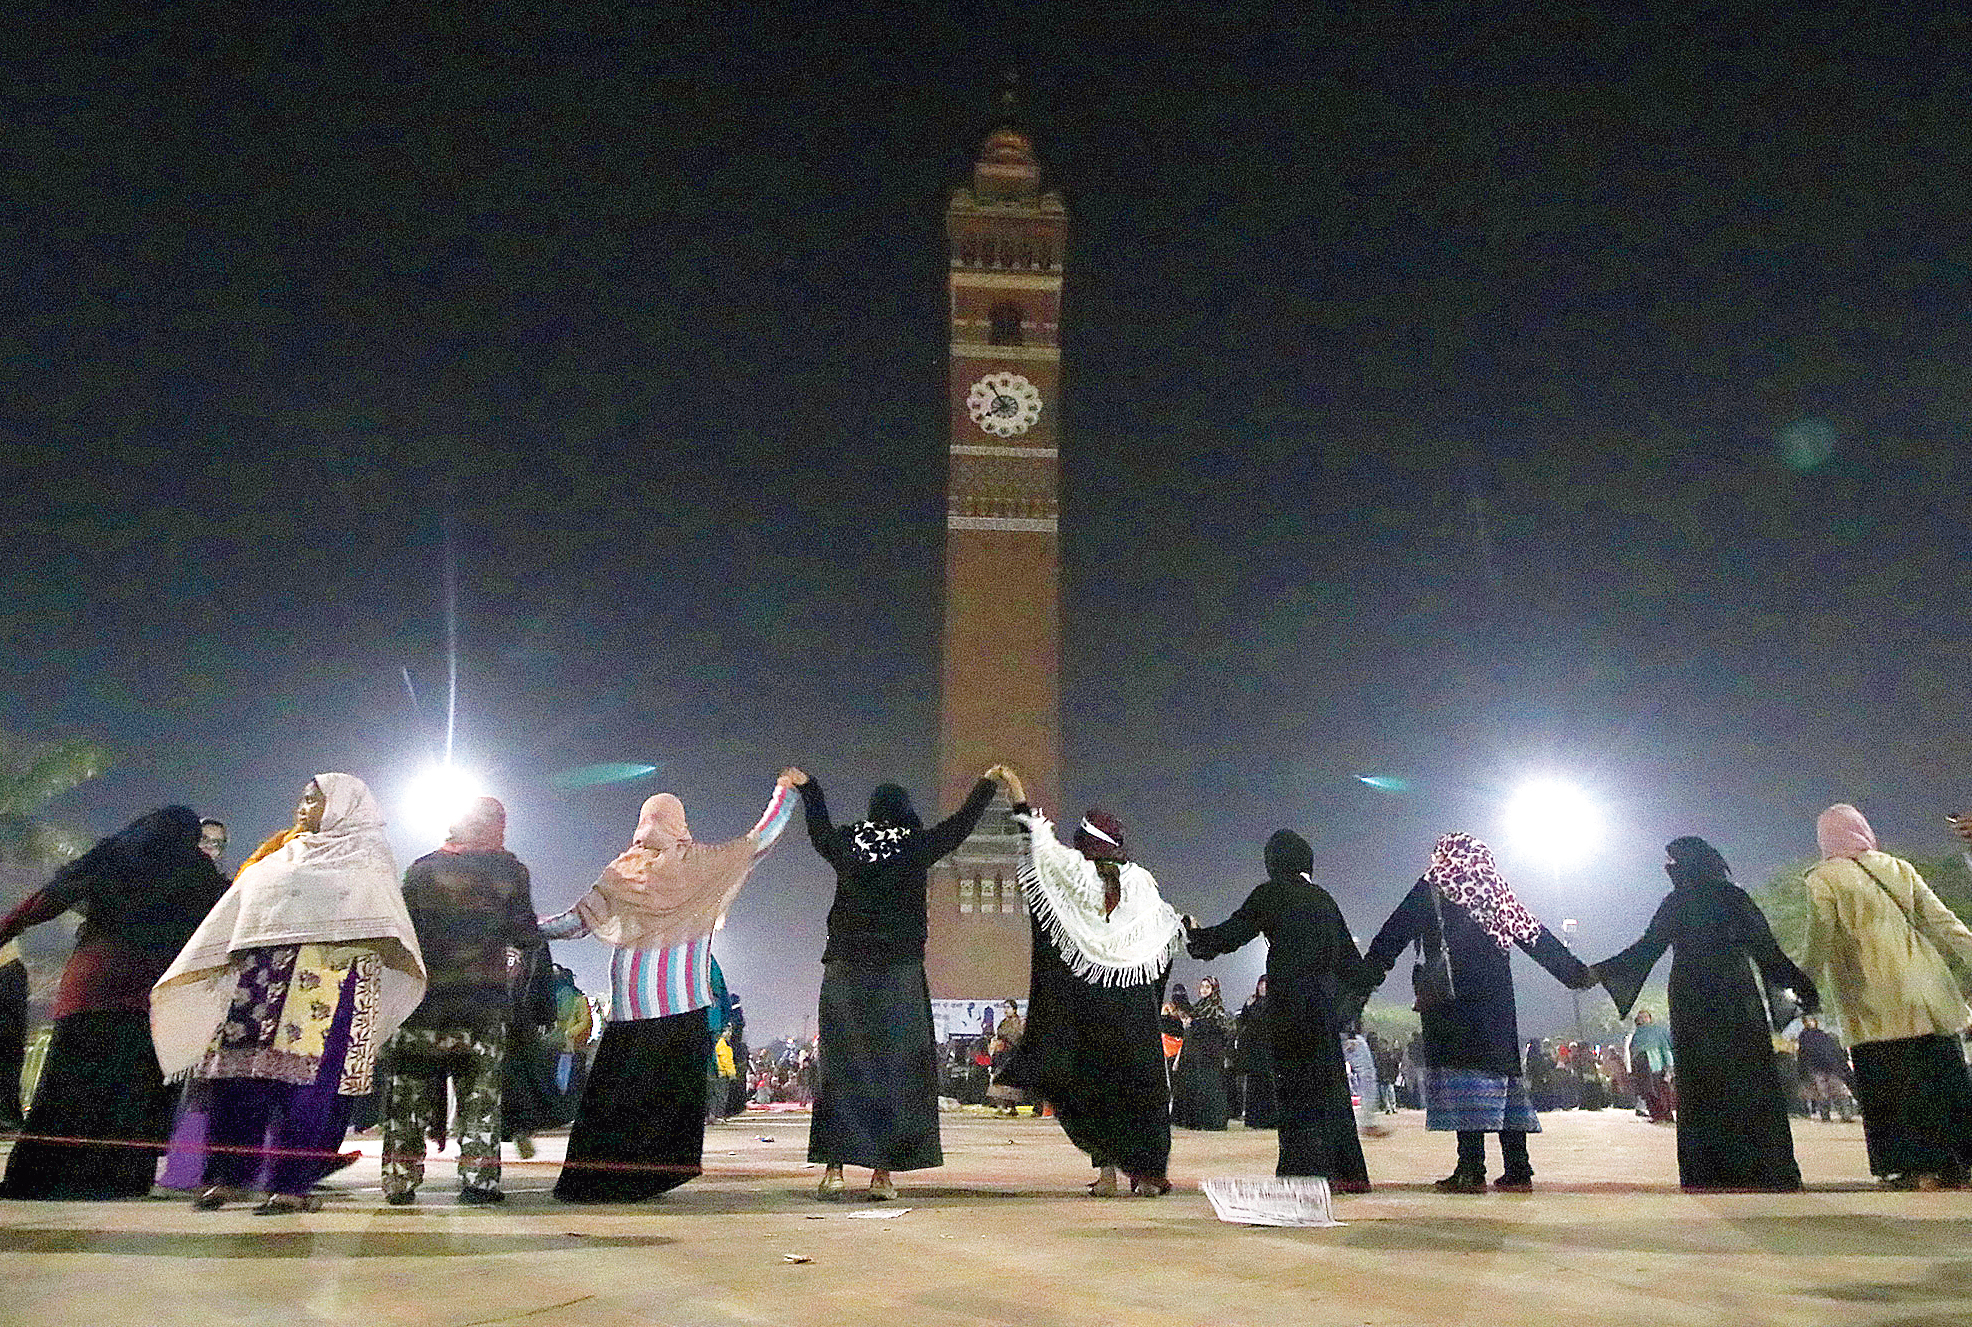 Women form a human chain around the clock tower in Lucknow in Sunday evening.